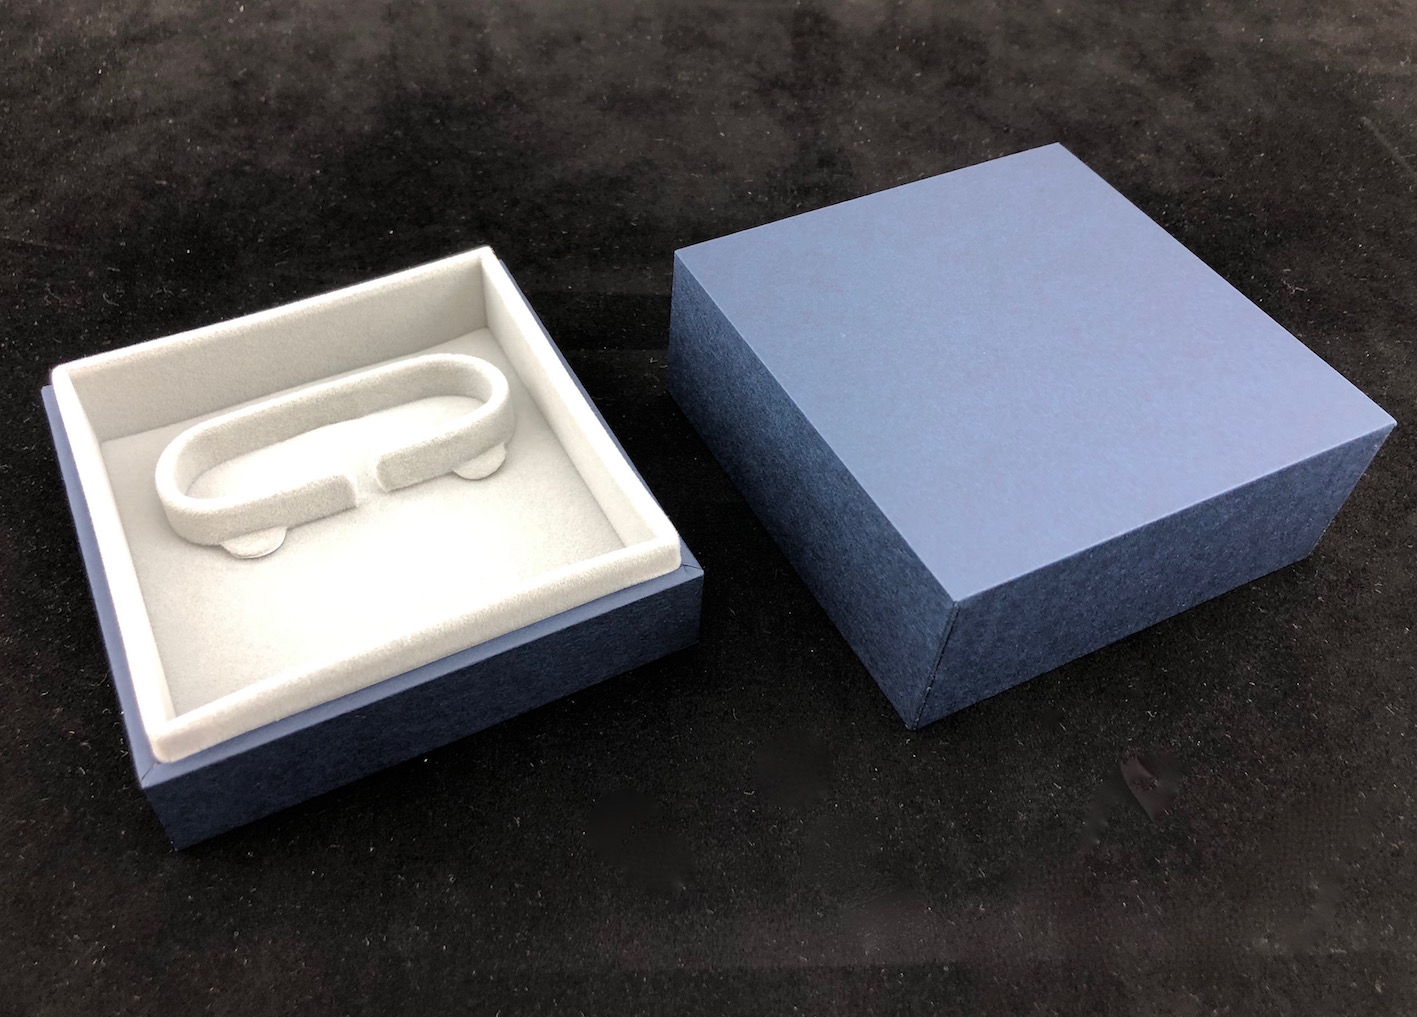 Blue Envy Bangle Box with suede interior